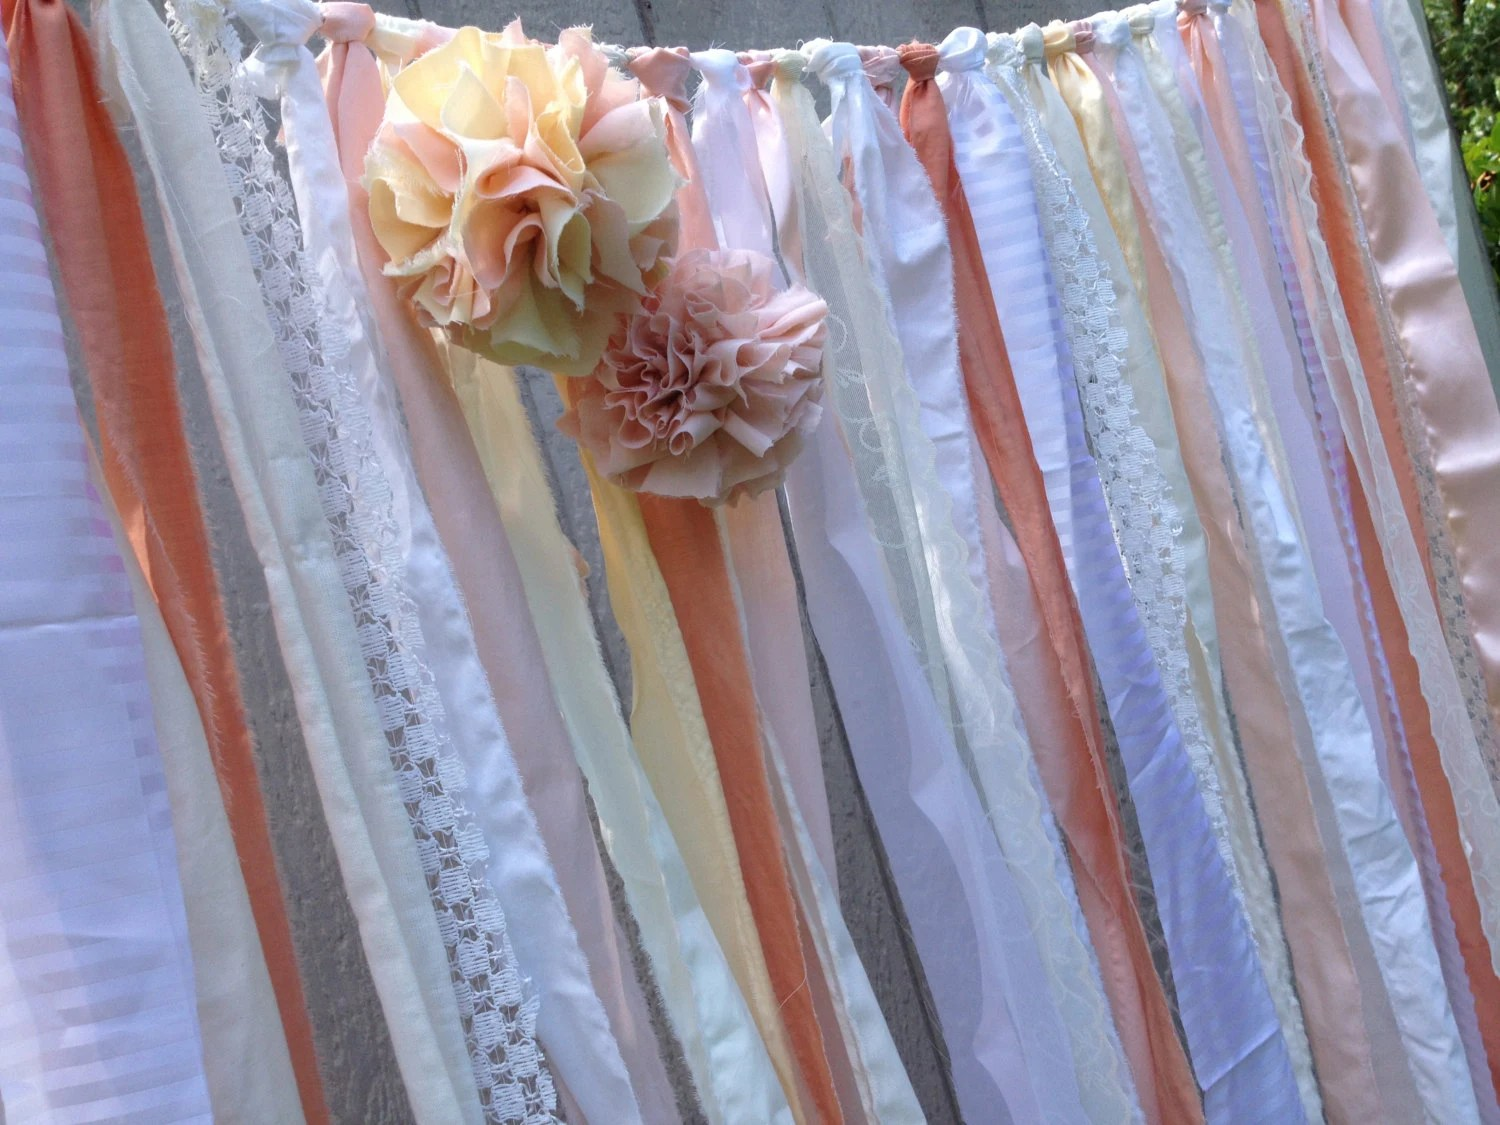 Peach Wedding Backdrop Fabric Garland - with Pom Poms - Rustic, Shabby, Tattered, Chic  - Special Event -